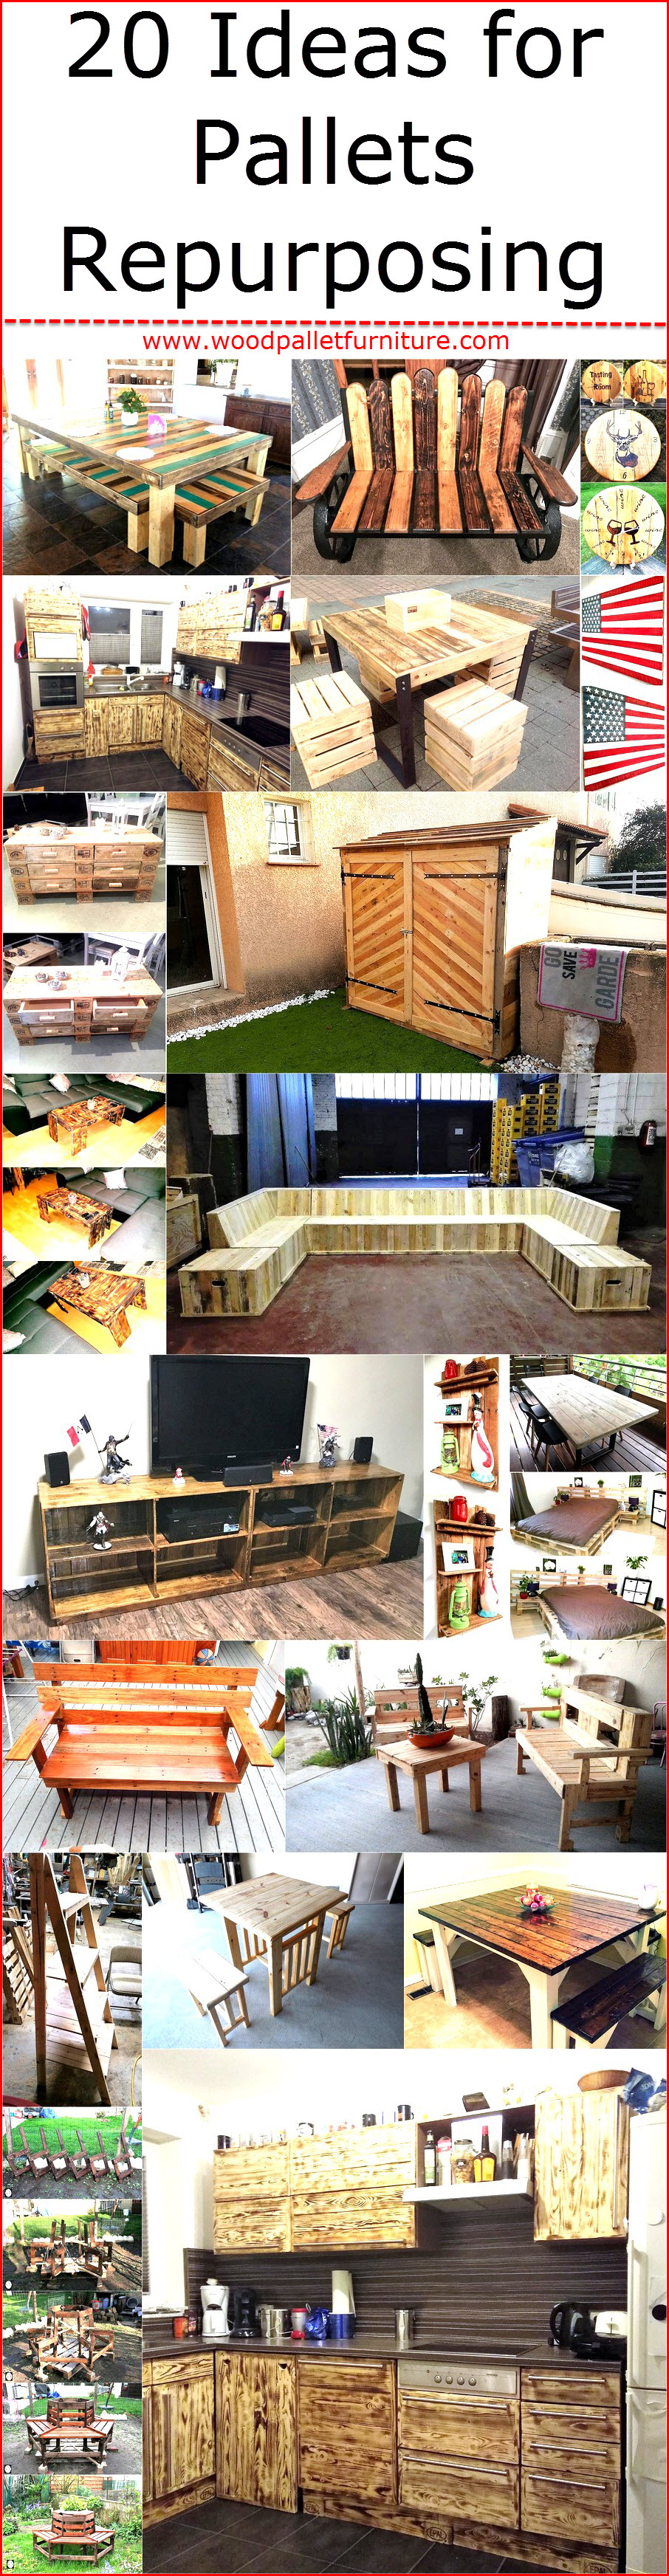 20-ideas-for-pallets-repurposing